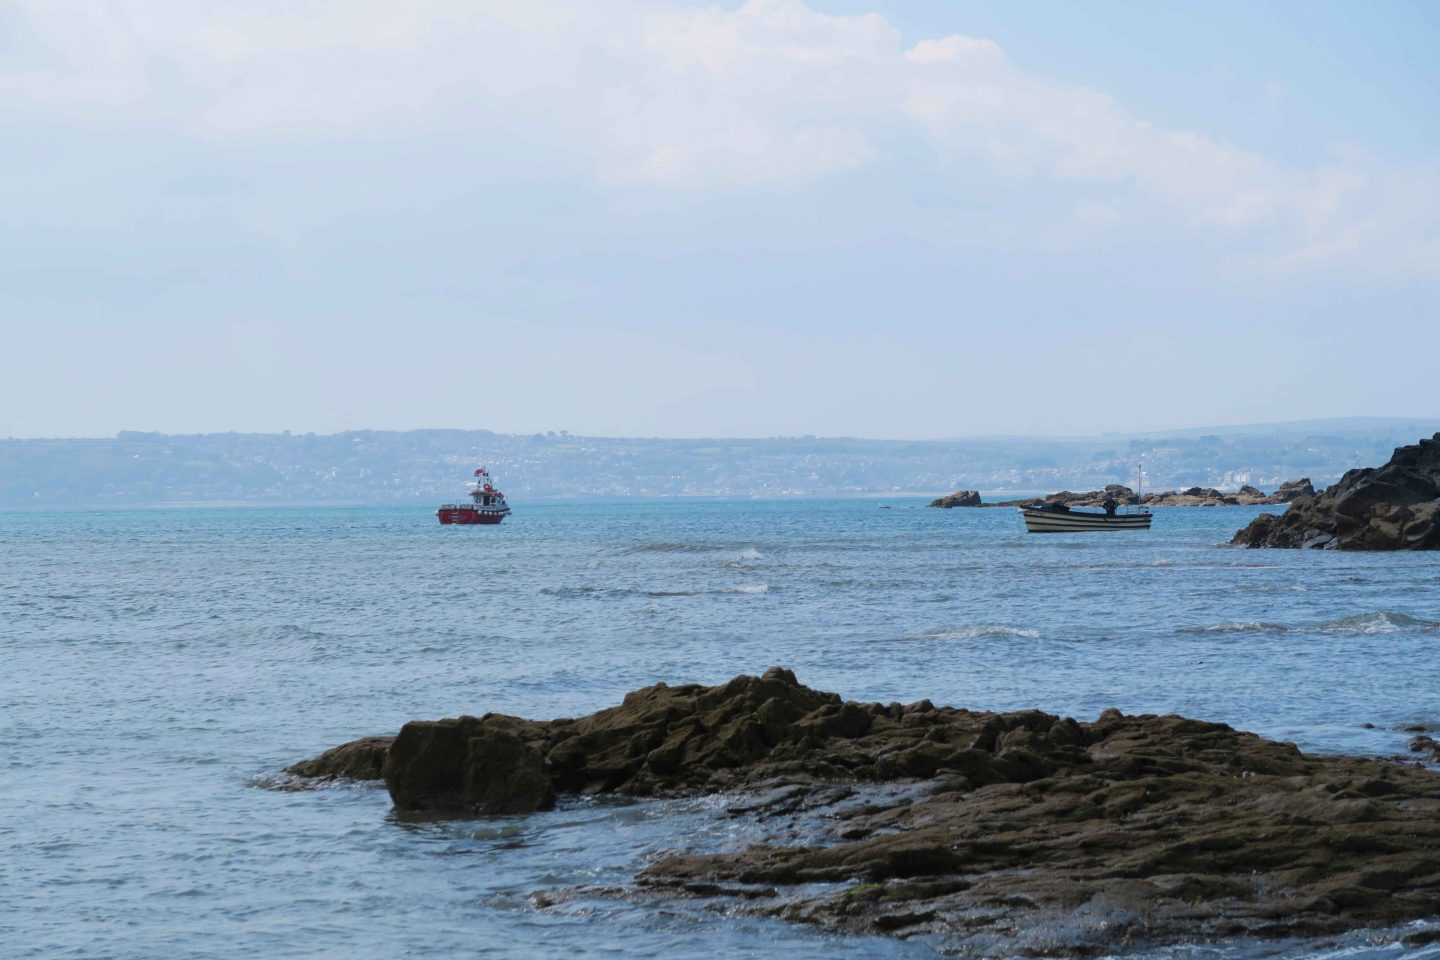 boats in the sea by marazion in cornwall